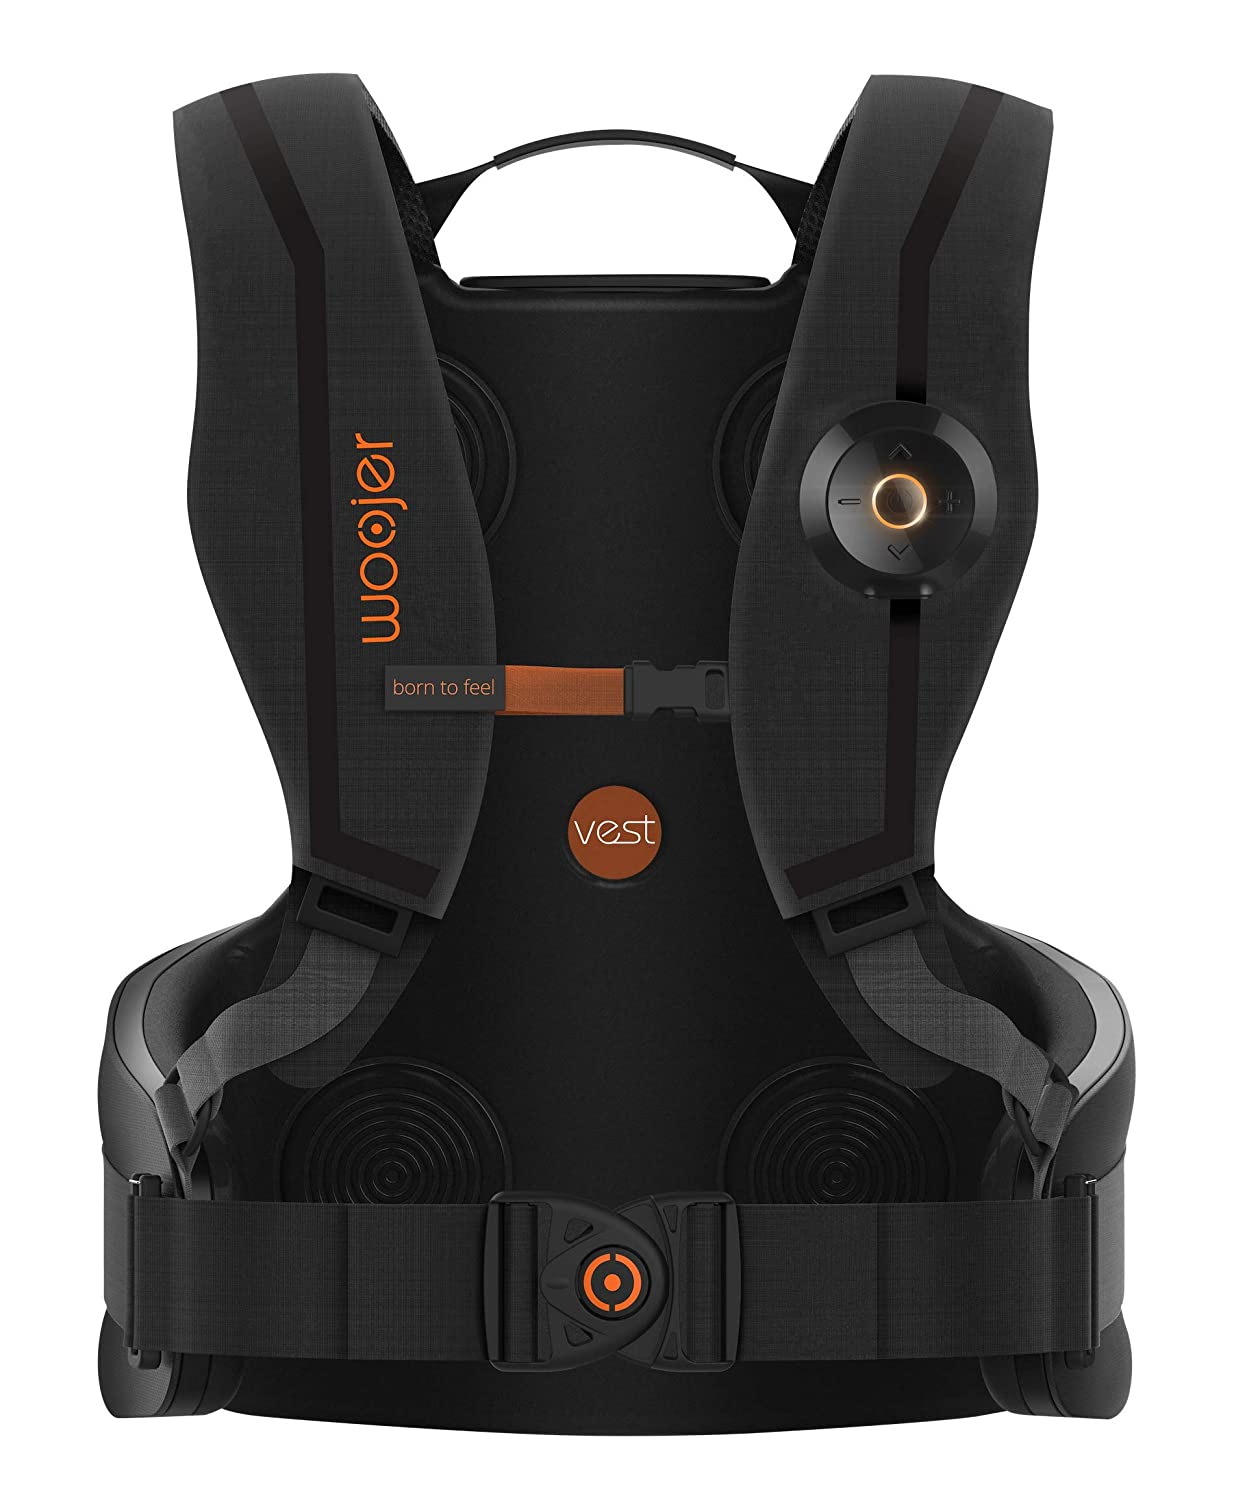 Woojer Vest Pro: Powerful Location-Specific haptic Vest with a Built-in 7 1  Surround Card That Delivers The Ultimate, Full 360° immersive Experience